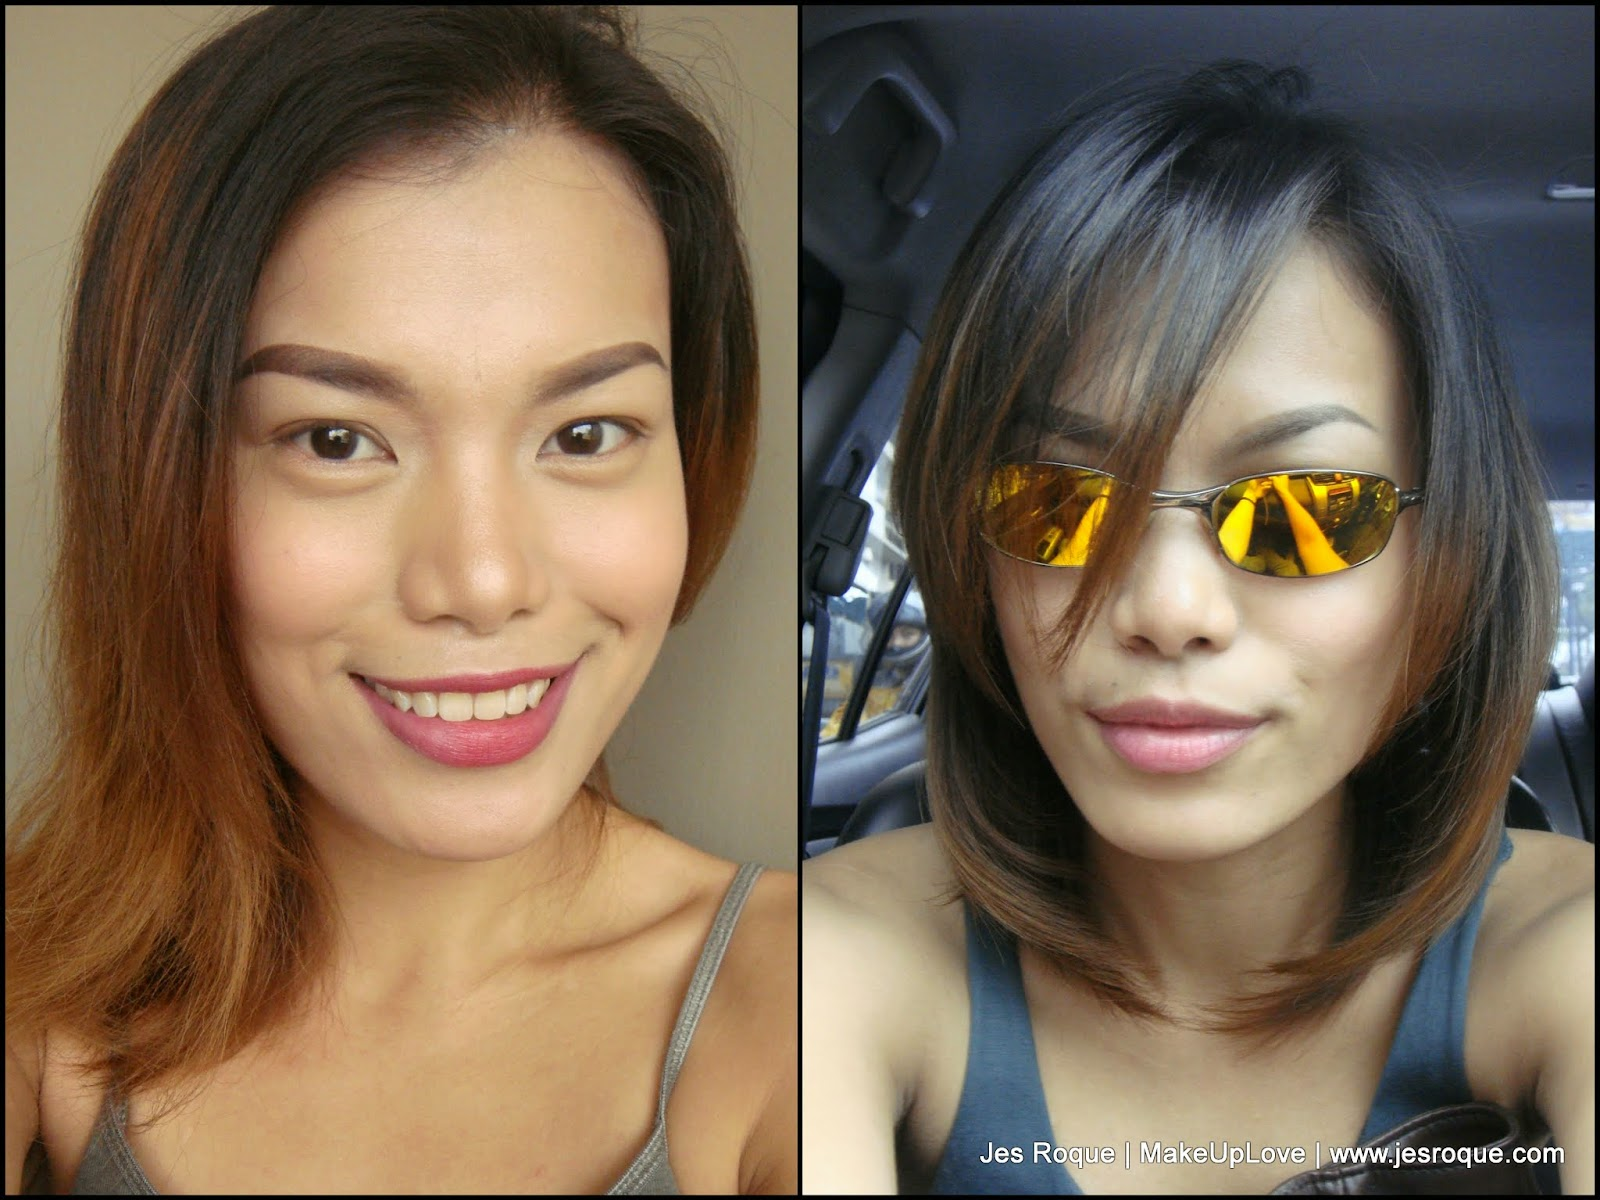 makeuplove   beauty, fashion and lifestyle: my hair got fixed at